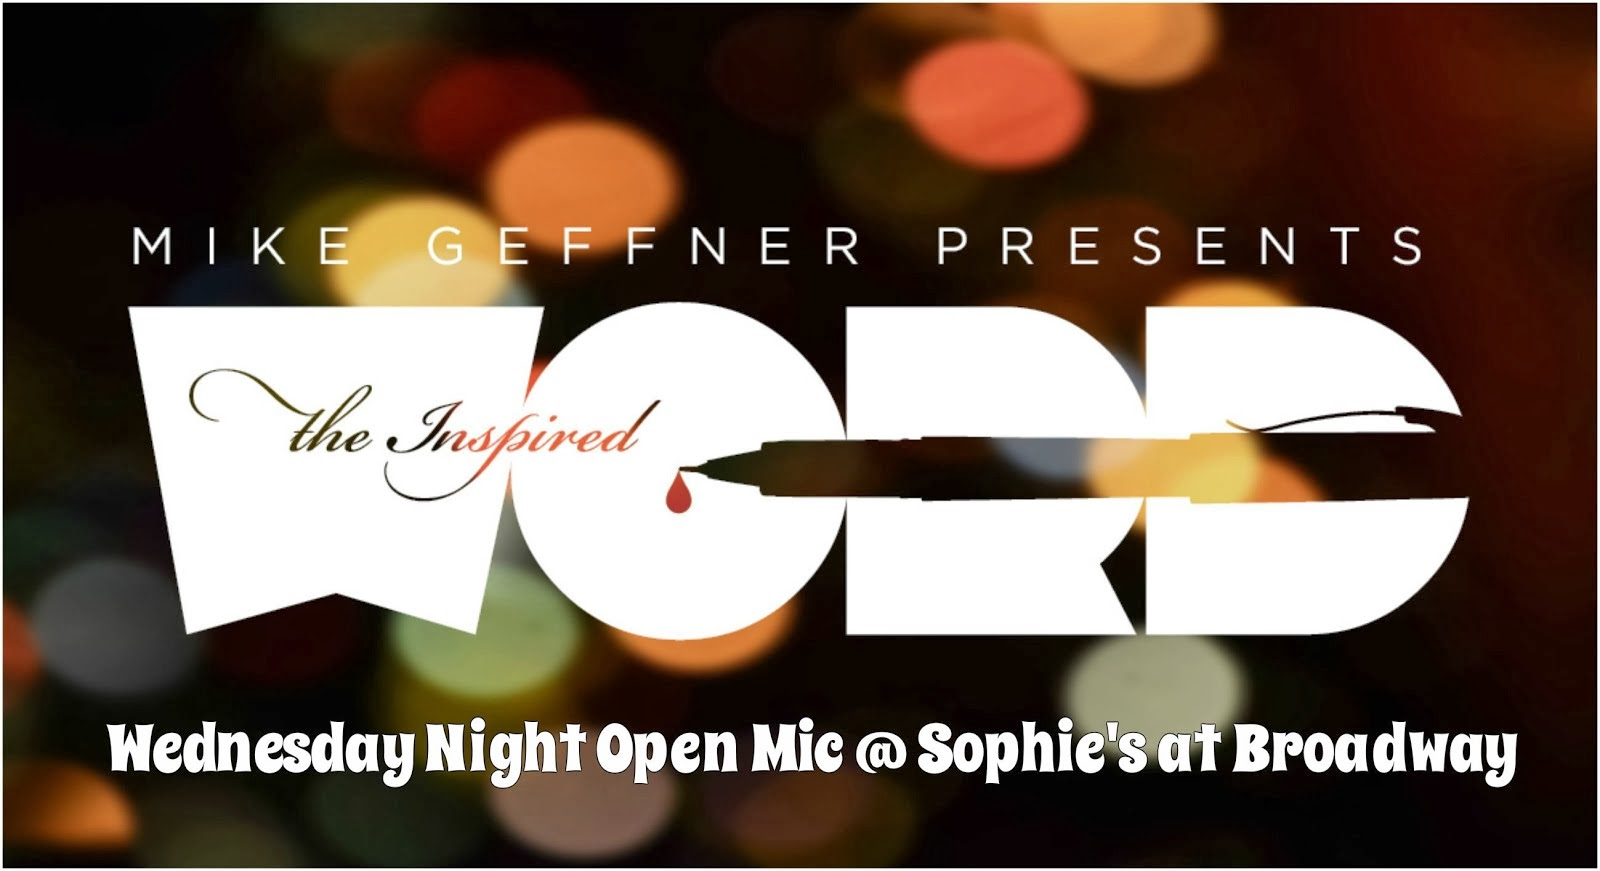 Wednesday Night Open Mic @ Sophie's